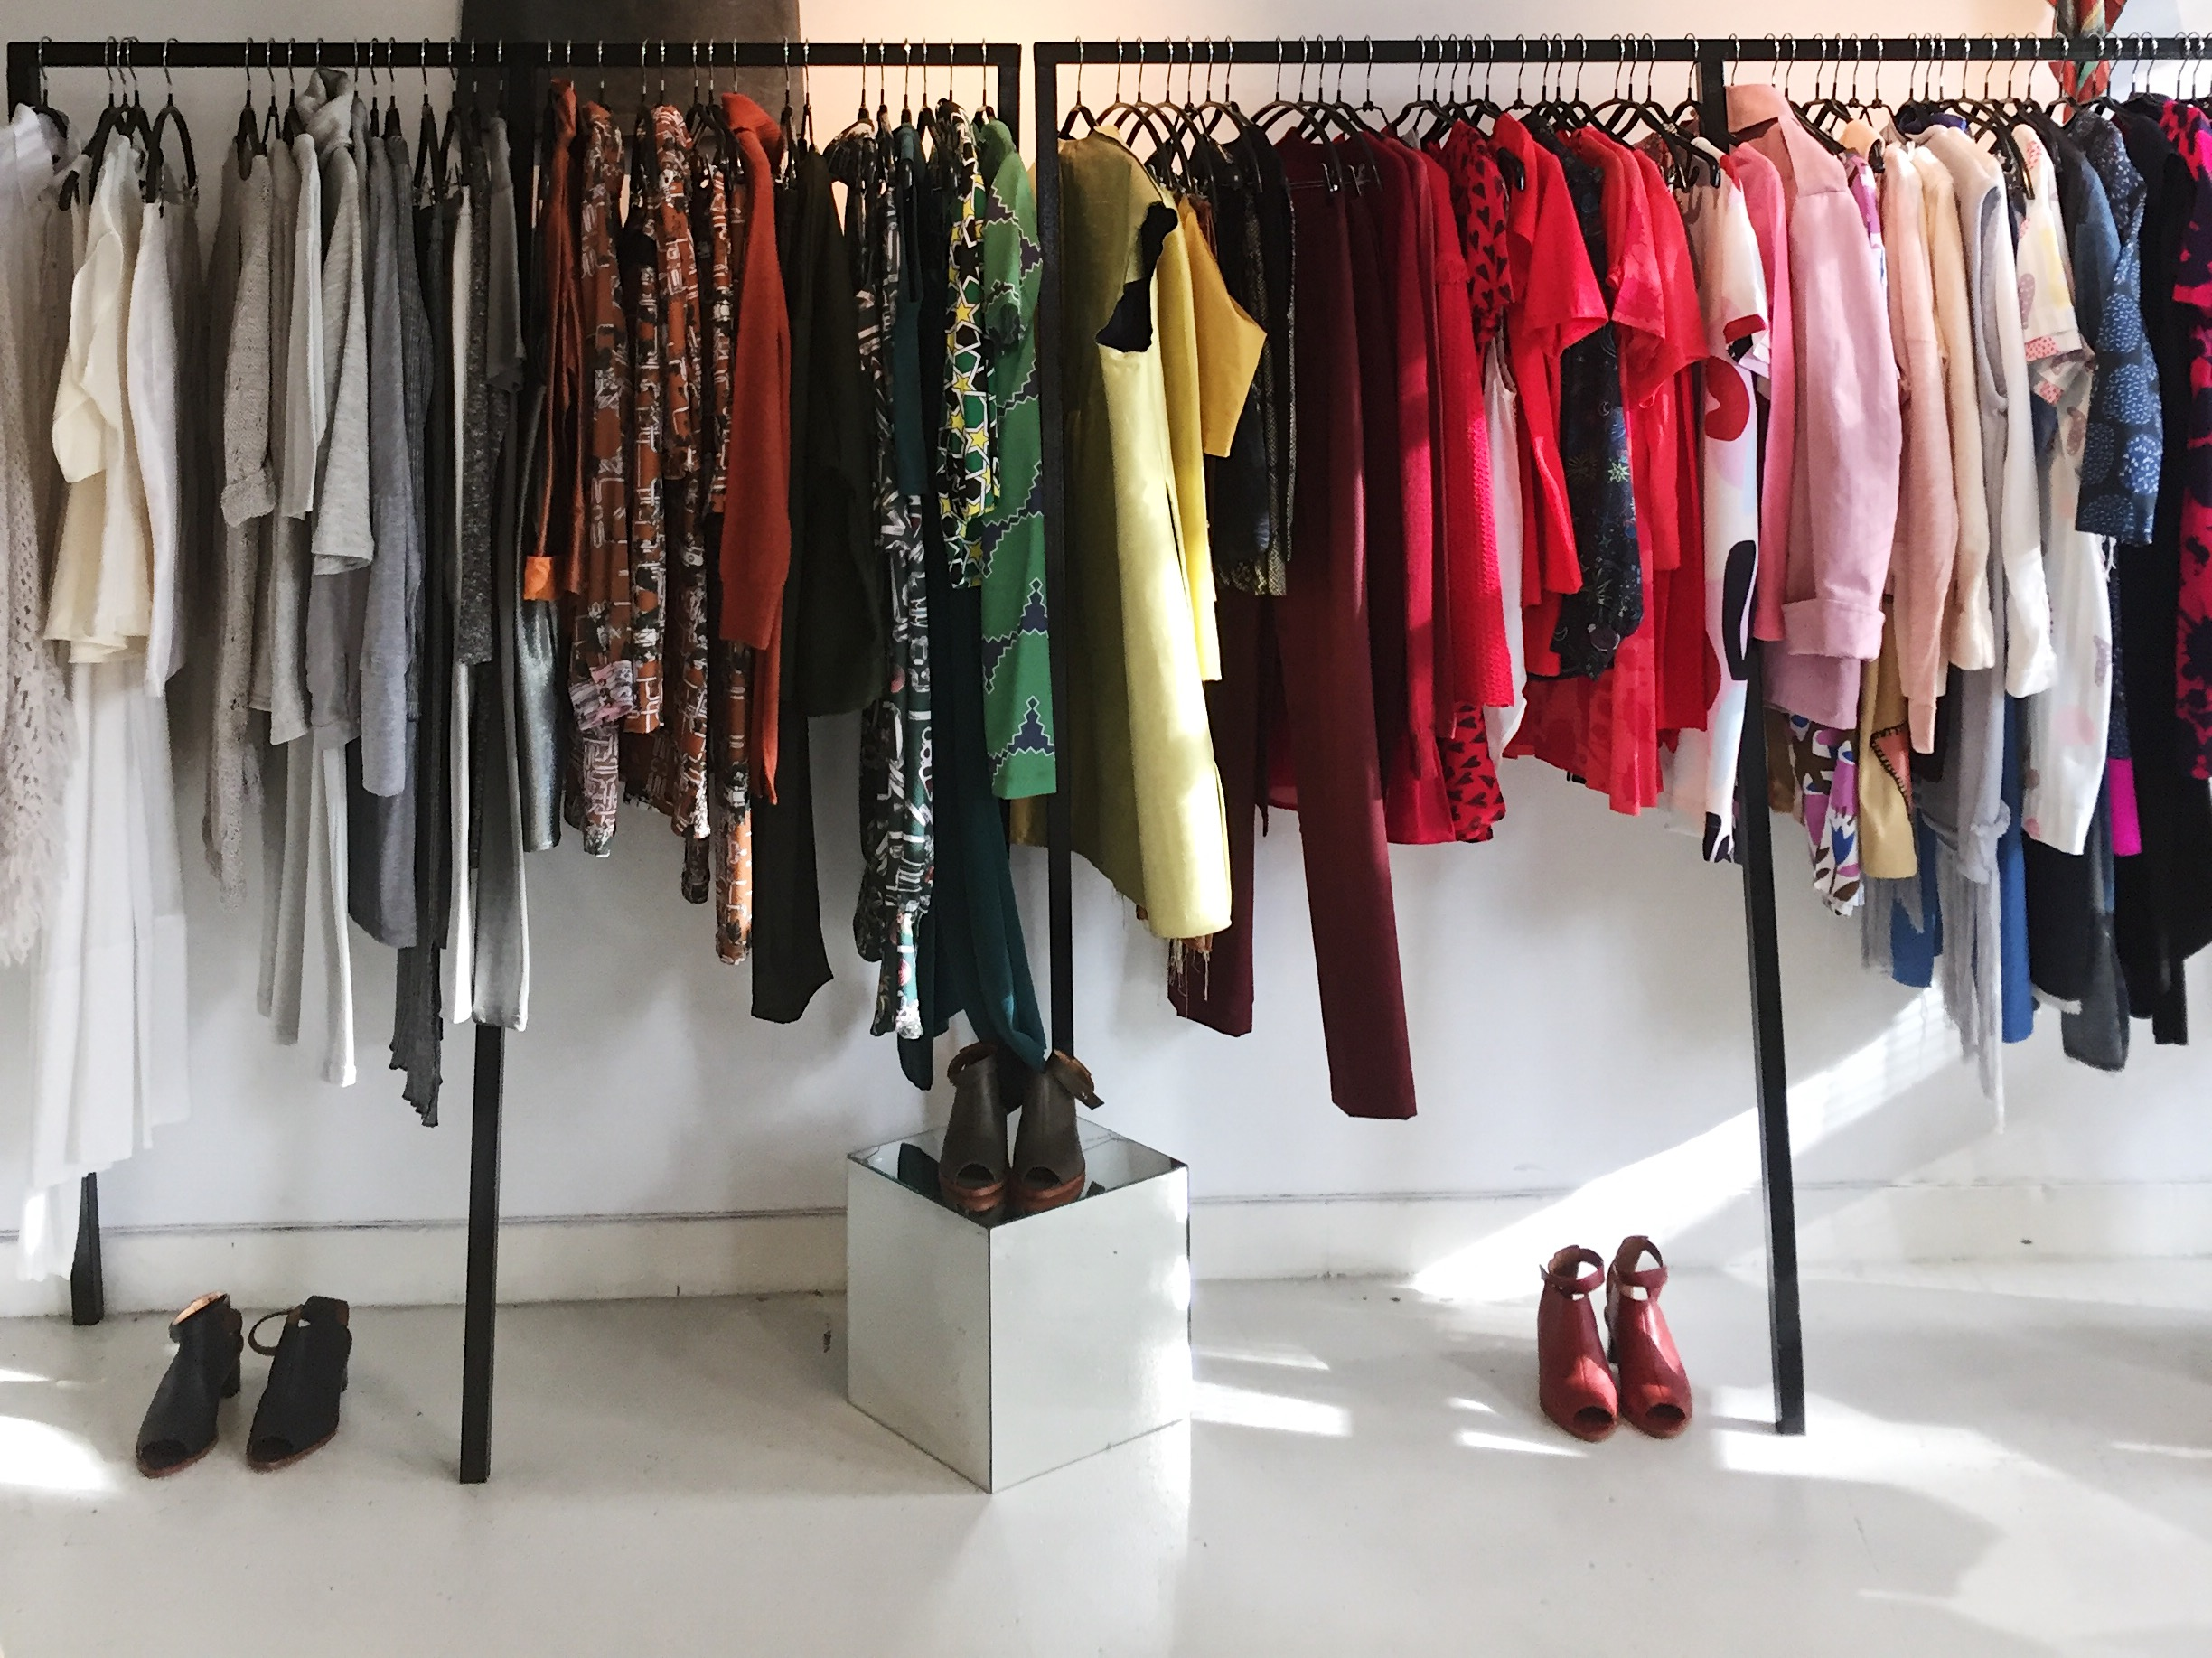 Rainbow-colored racks show off locally designed threads at Maria Lee's sunny boutique.